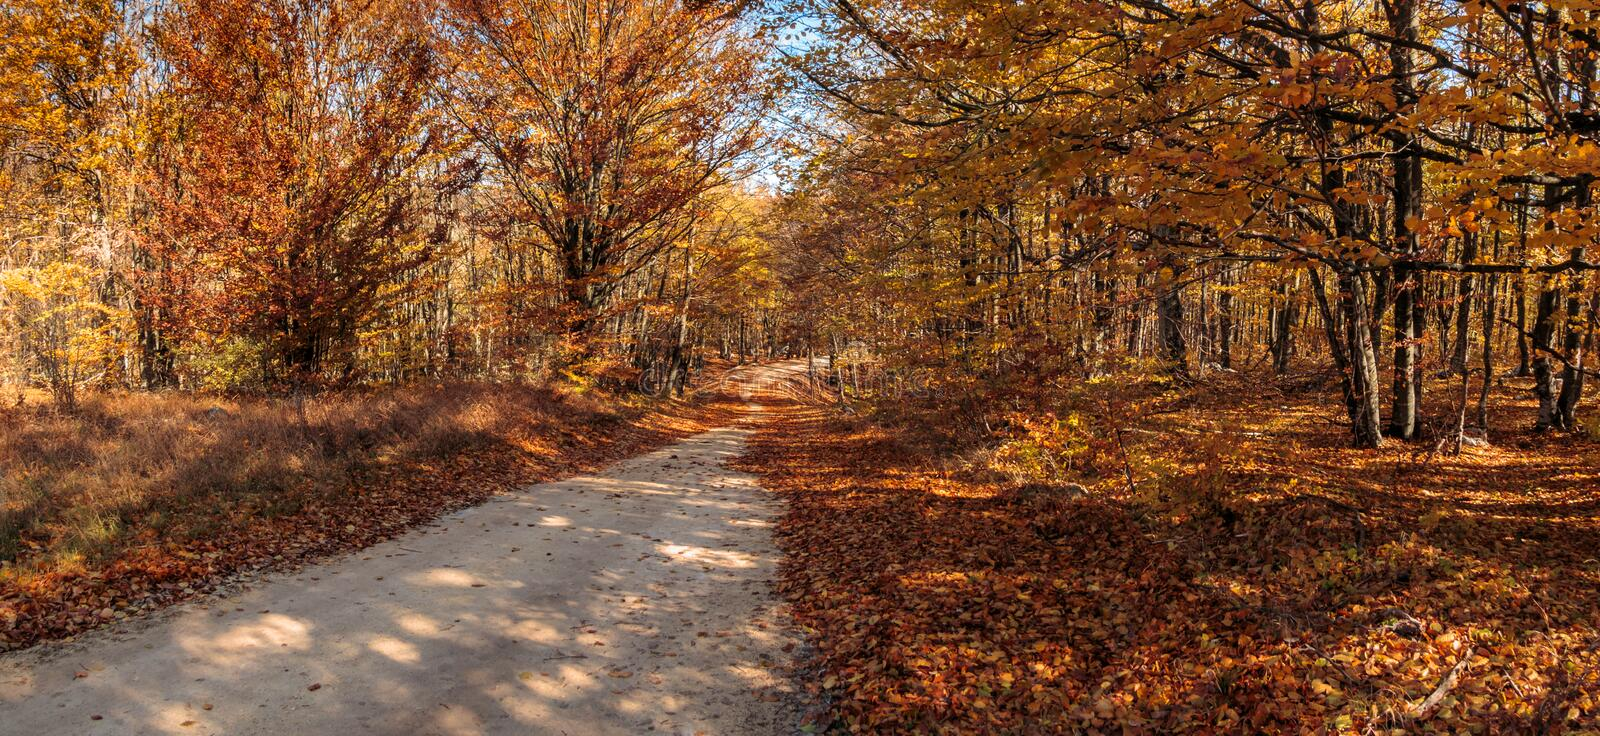 Autumn colors in country side stock photo